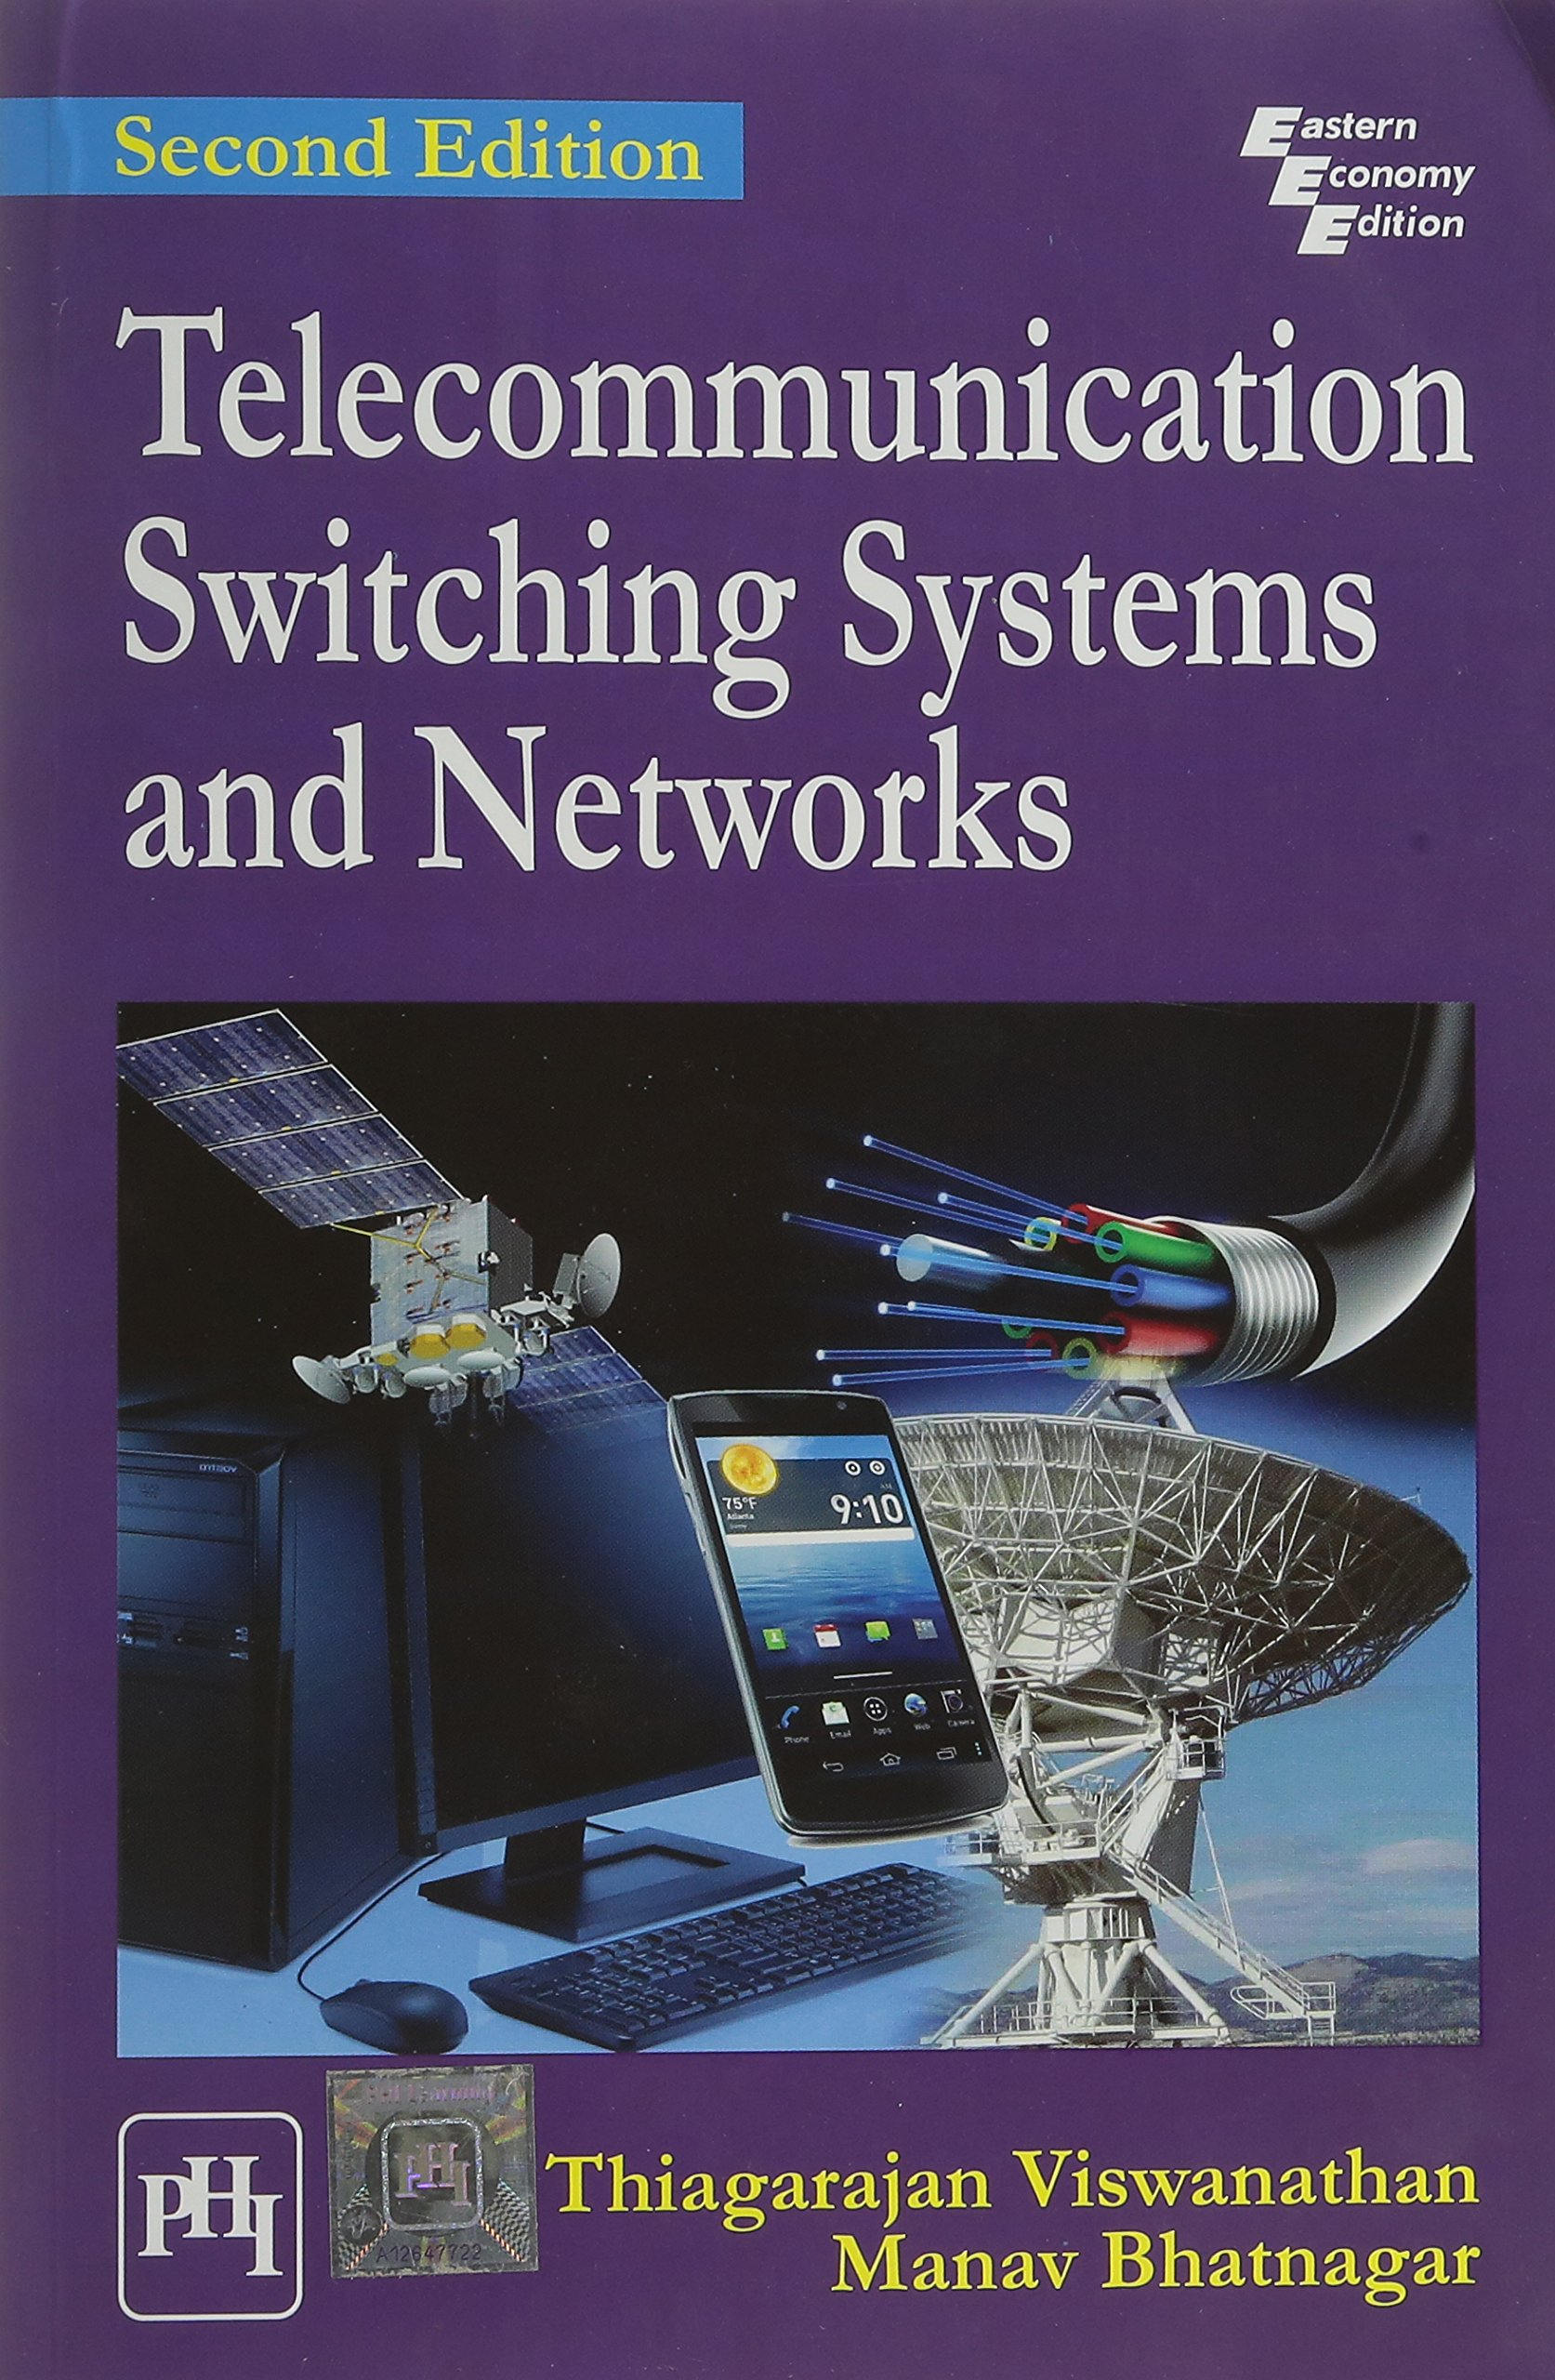 telecommunication switching systems and networks ebook free download